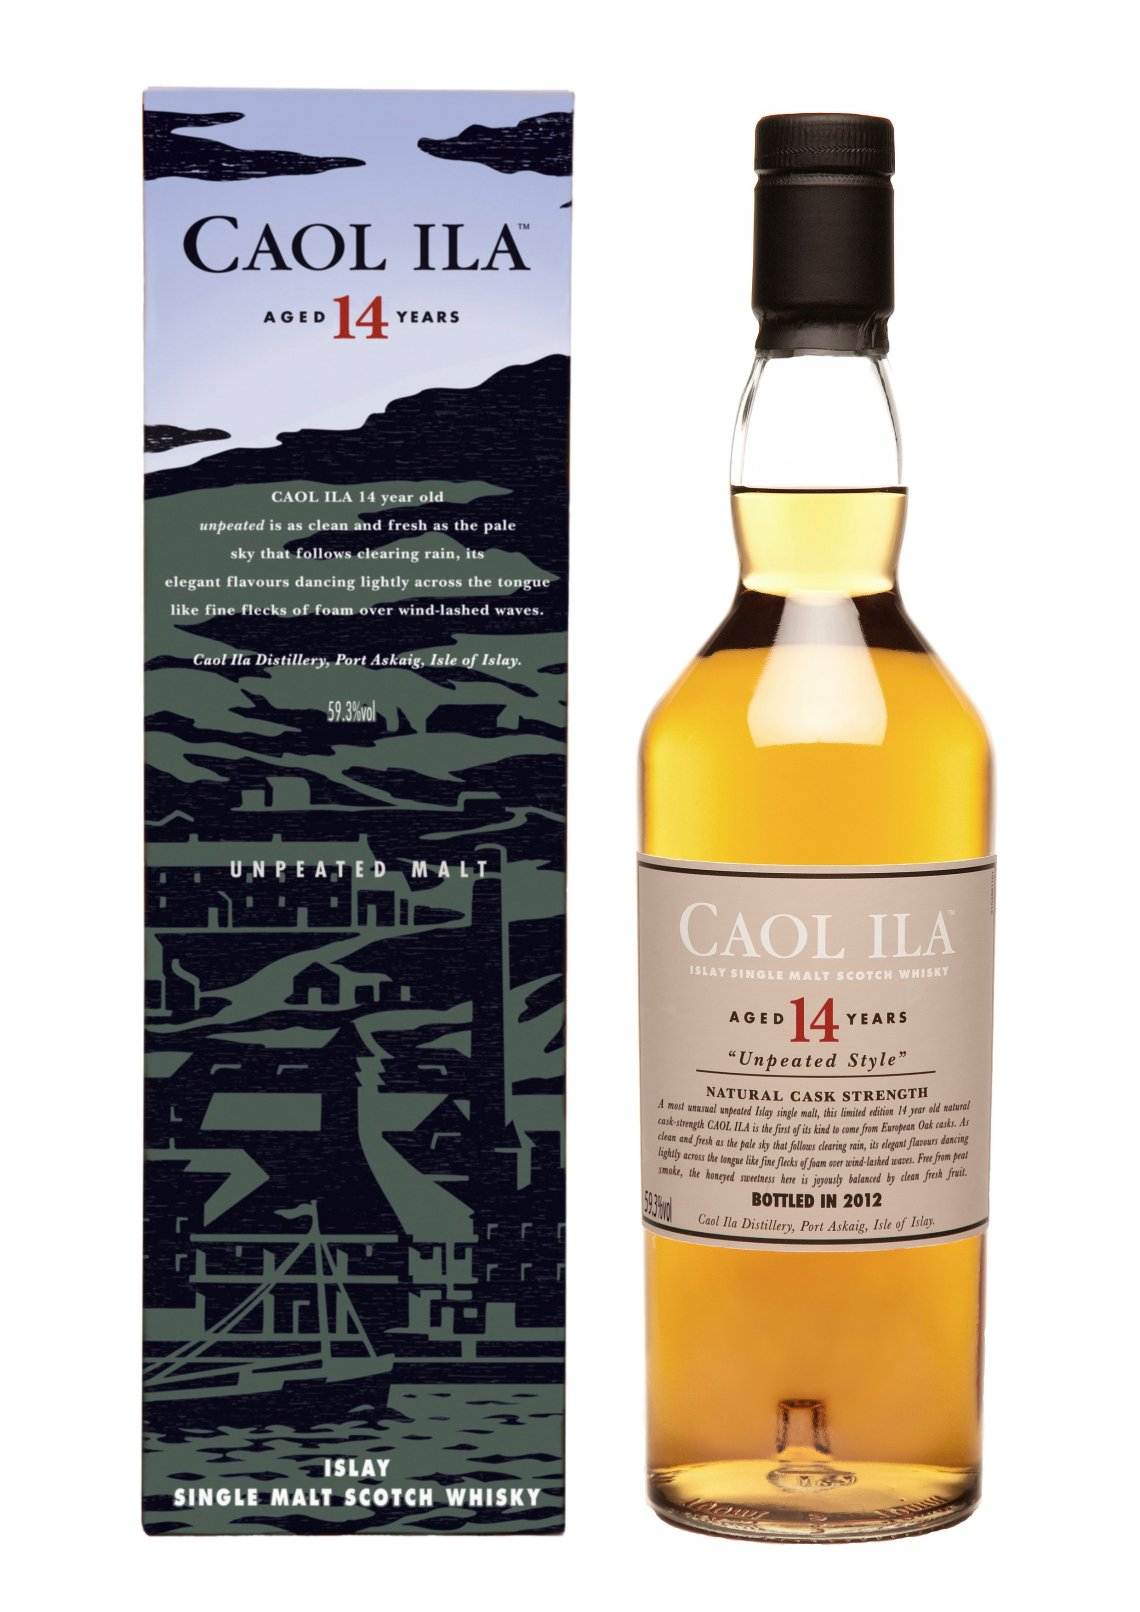 Caol Ila Unpeated 14 Years Old Limited Edition 2012